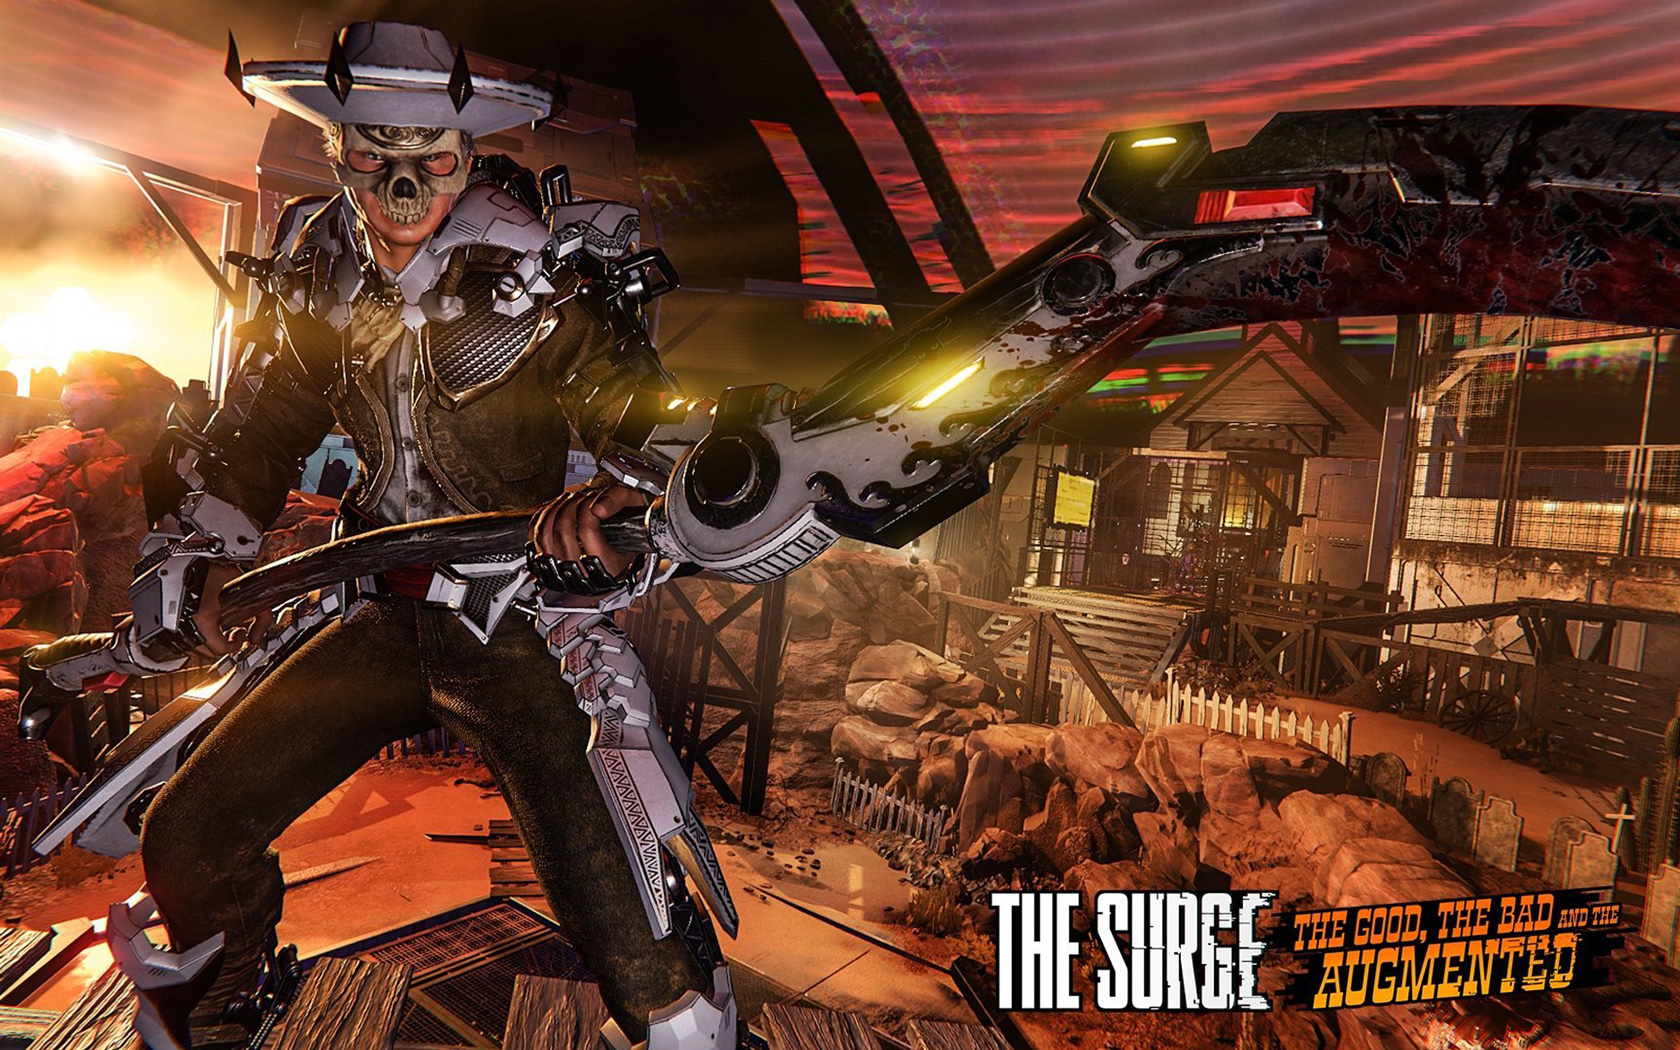 Free The Surge Wallpaper in 1680x1050